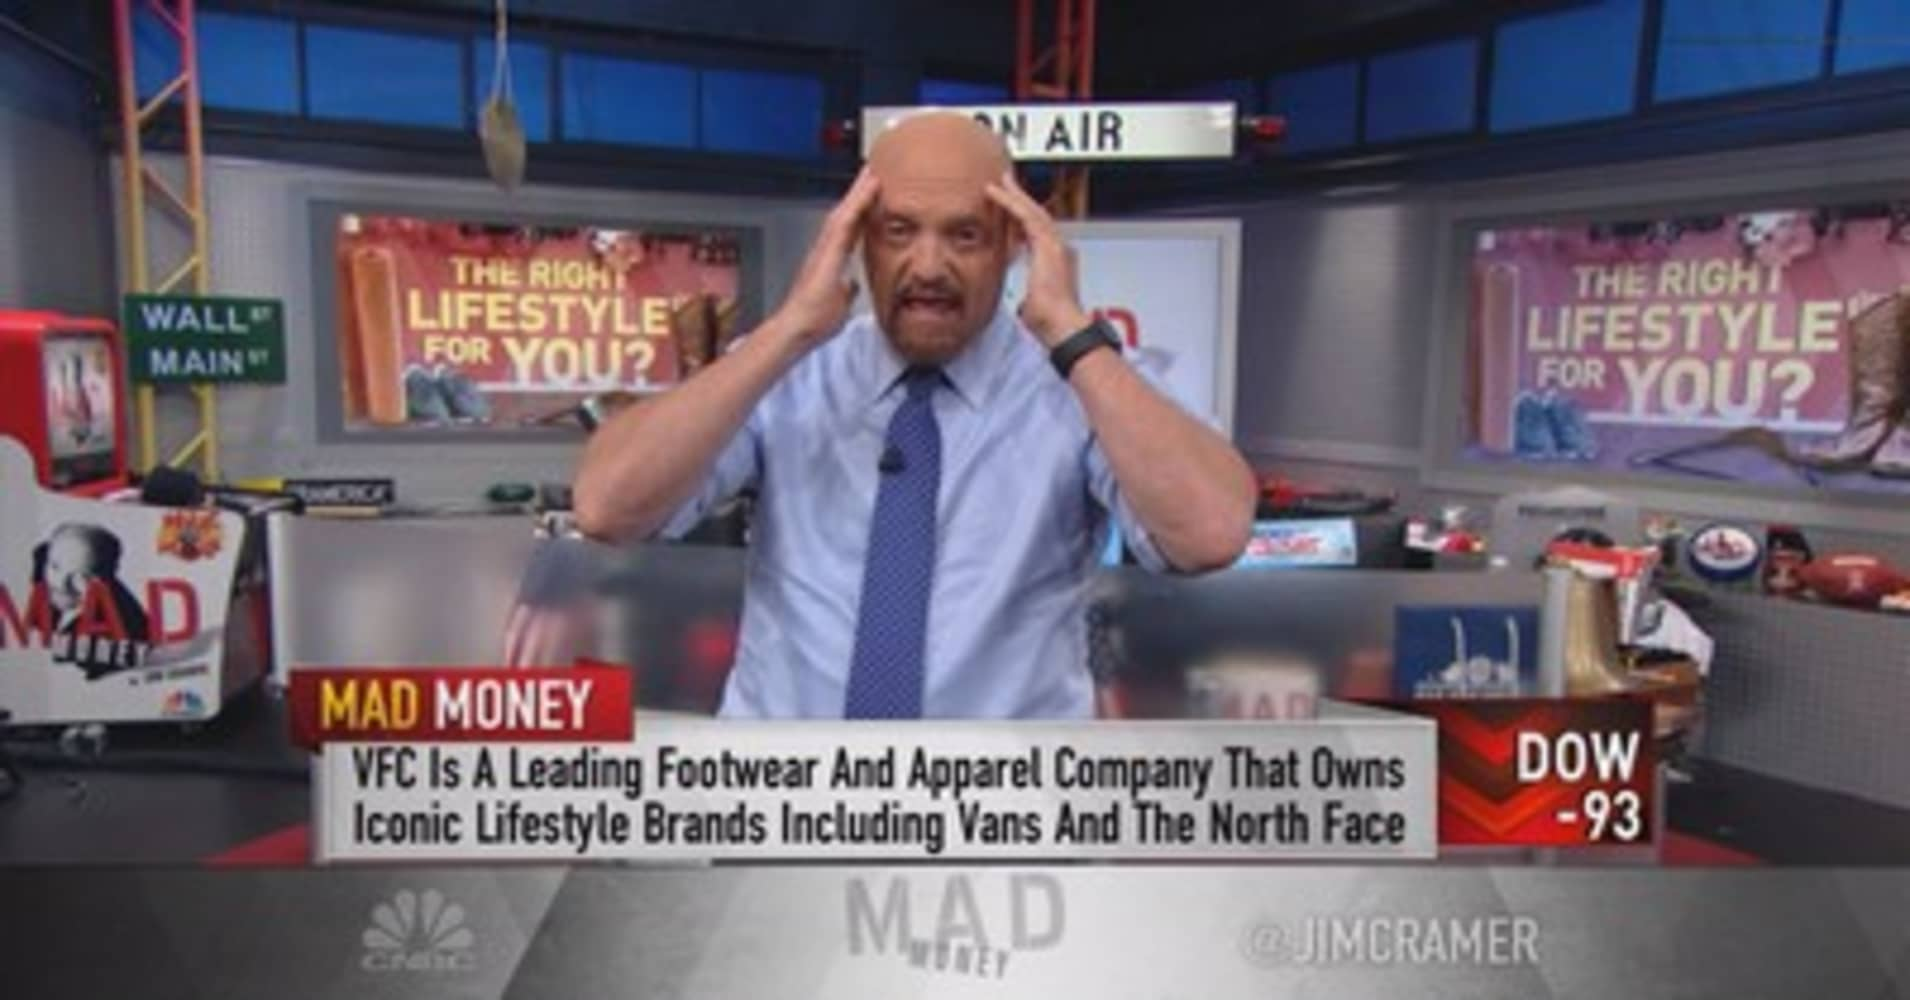 Cramer Vans Could Be The Next Major Lifestyle Brand After Nike